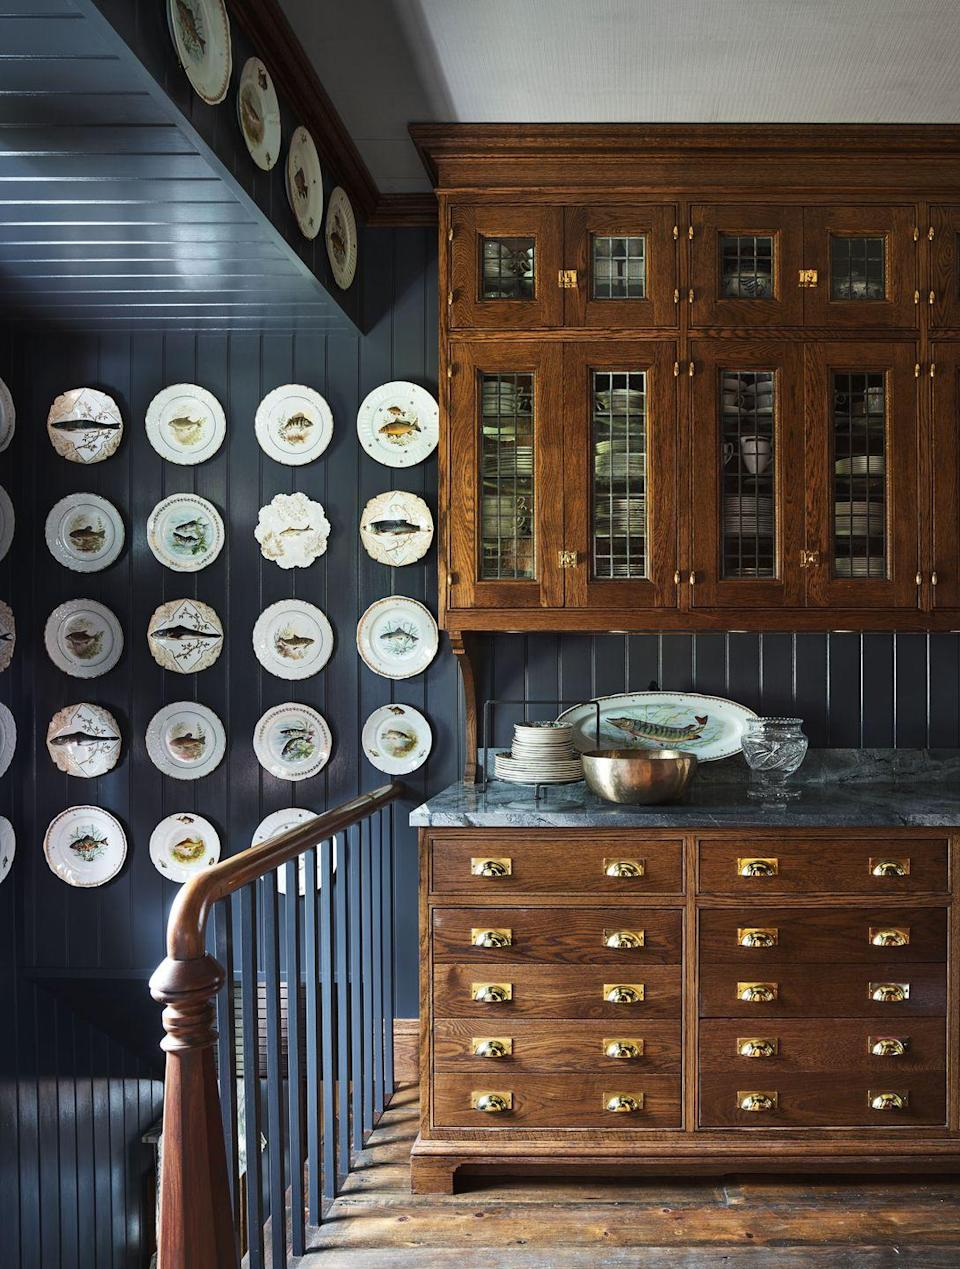 """<p>In designer Philip Mitchell's Nova Scotia home, the servery features vertical v-groove paneling as the backsplash. Heirloom Limoges fish sets hang on the painted paneled walls. Wall color, Gray by <a href=""""https://www.benjaminmoore.com/"""" rel=""""nofollow noopener"""" target=""""_blank"""" data-ylk=""""slk:Benjamin Moore"""" class=""""link rapid-noclick-resp"""">Benjamin Moore</a>.</p>"""